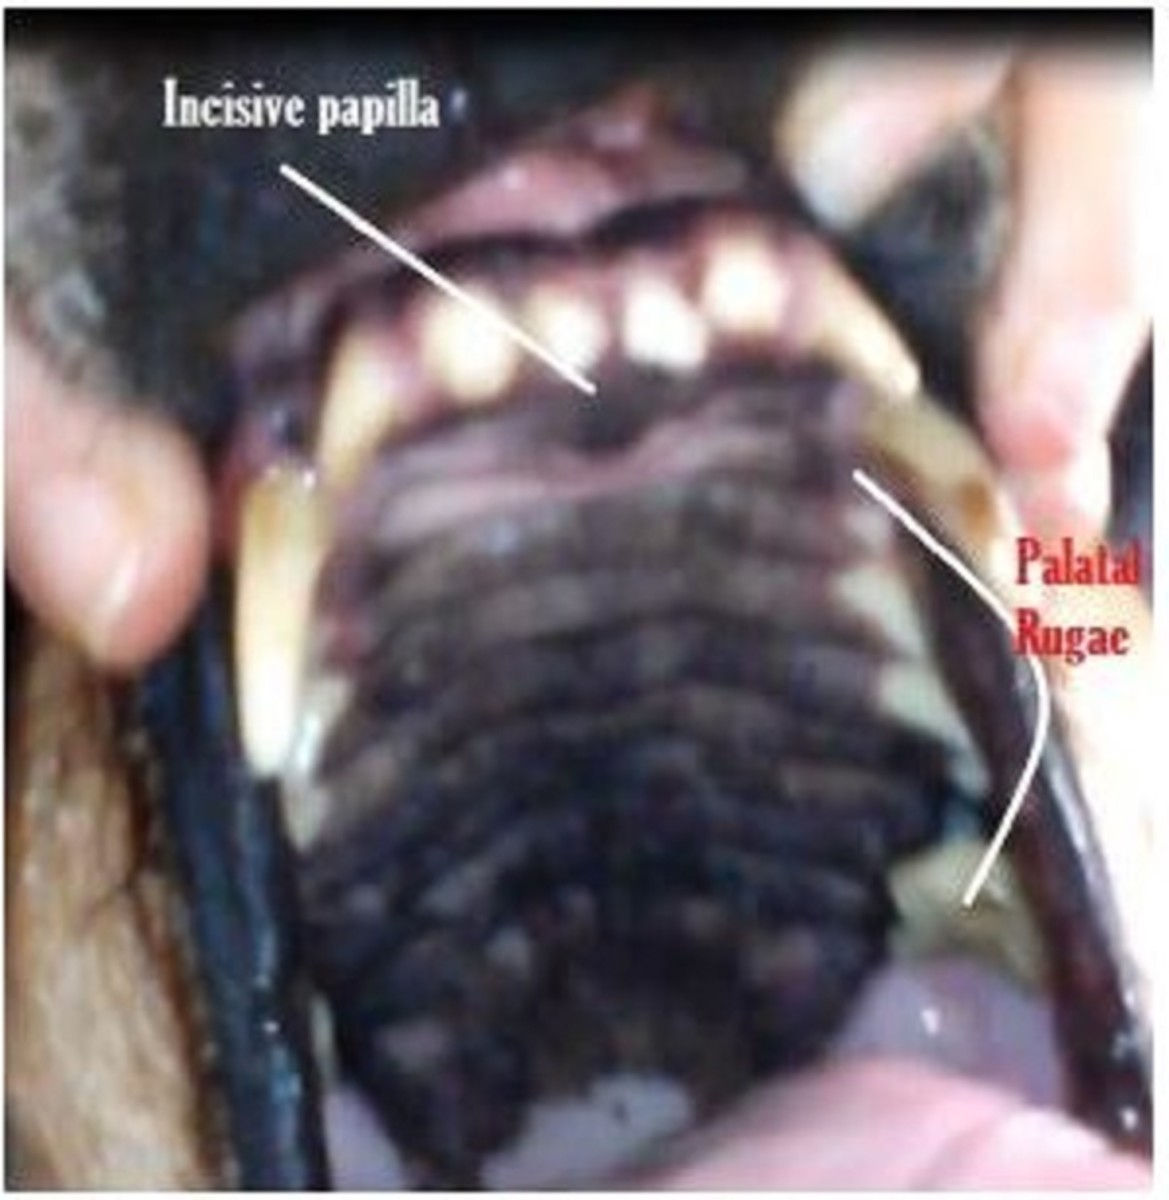 Picture of the incisive papilla in the roof of my dog's mouth. Notice the black bump right behind the top middle incisor teeth.